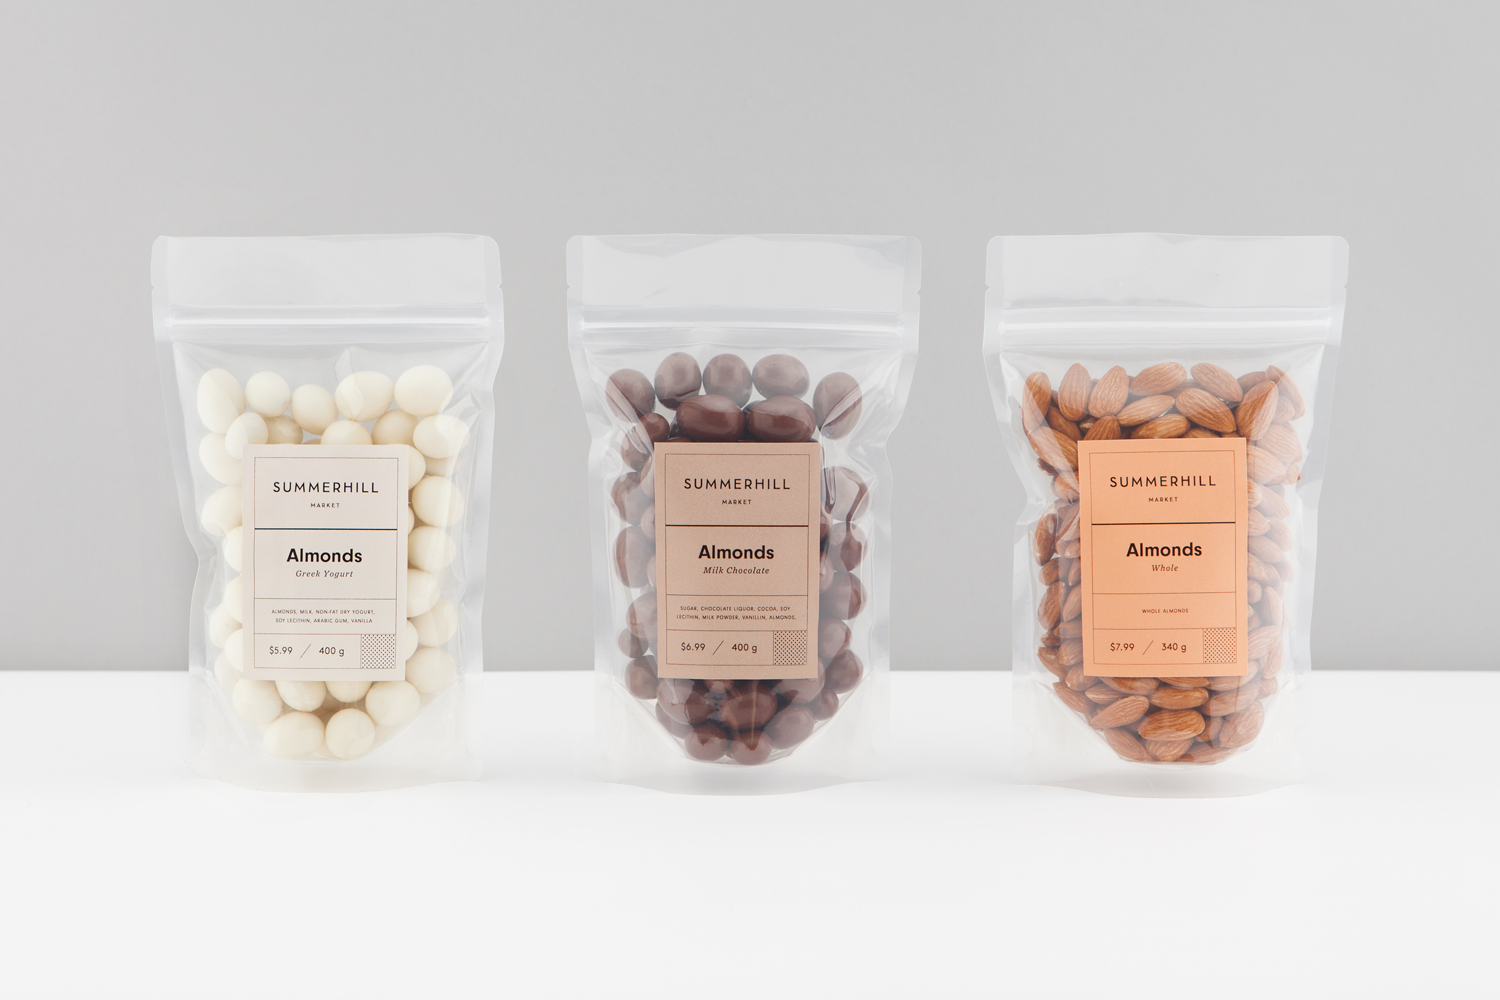 Branding and almond packaging designed by Canadian studio Blok for Toronto based boutique grocery store Summerhill Market